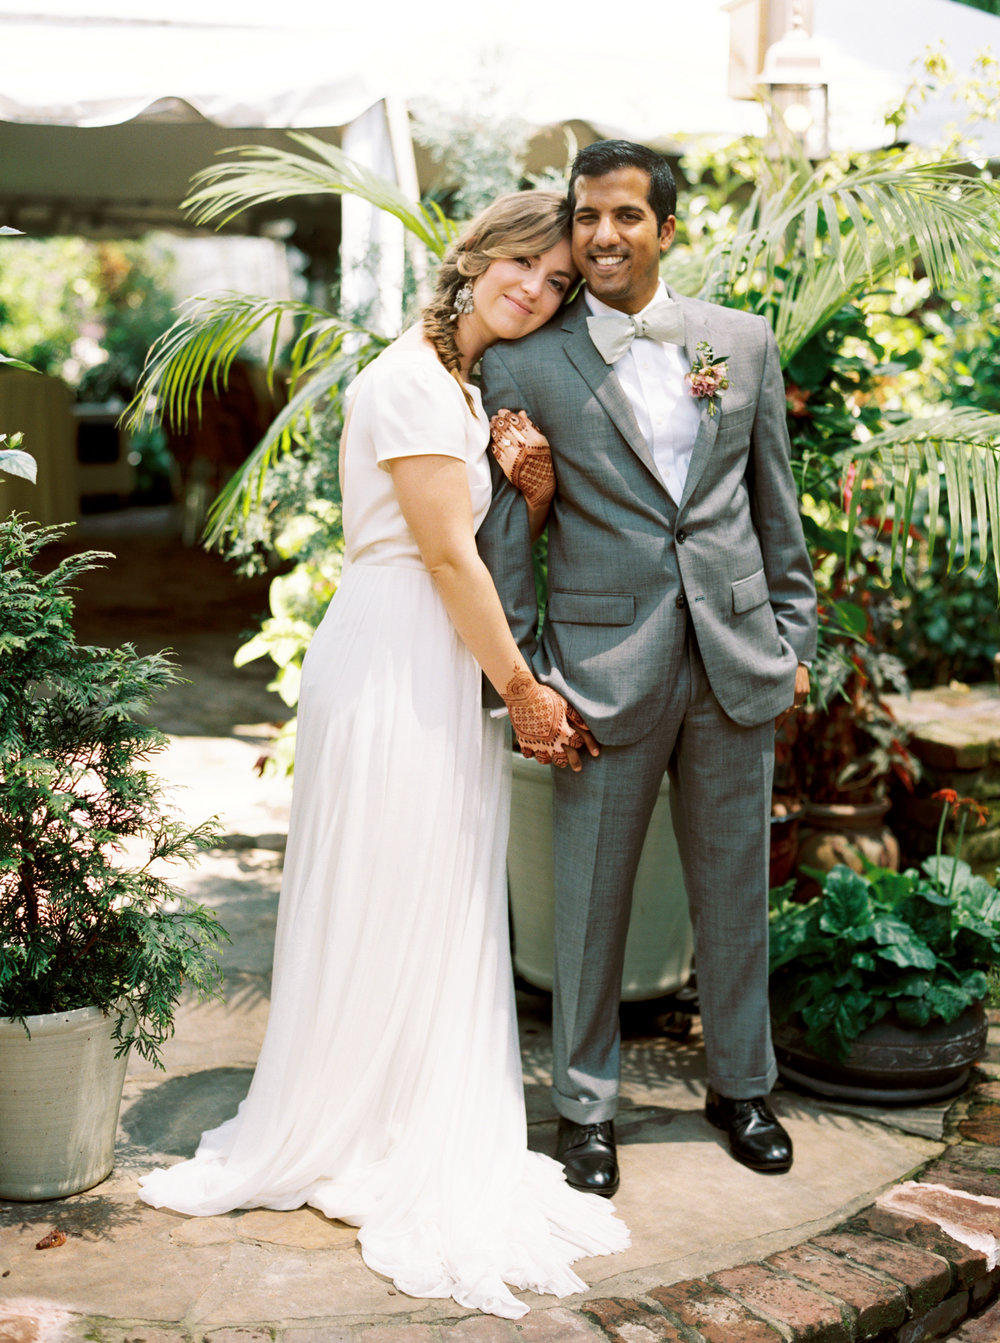 Wahoo_Grill_Atlanta_Indian_Wedding_Abigail_Malone_Photgoraphy_FIlm-37.jpg